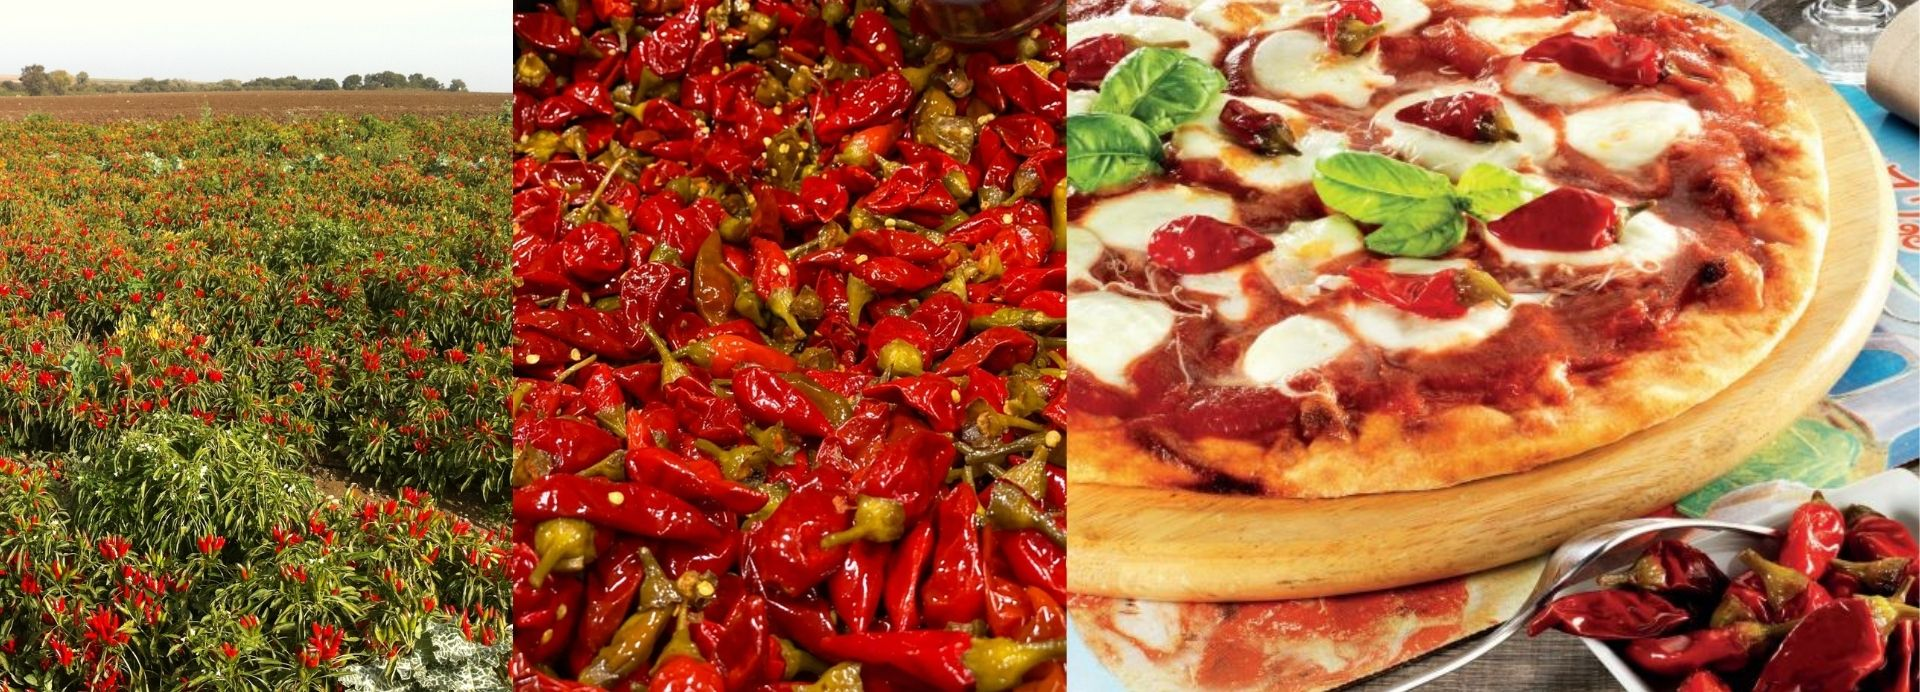 Tutto Calabria Calabrian Hot Chili Peppers | Wholesale Italian Food